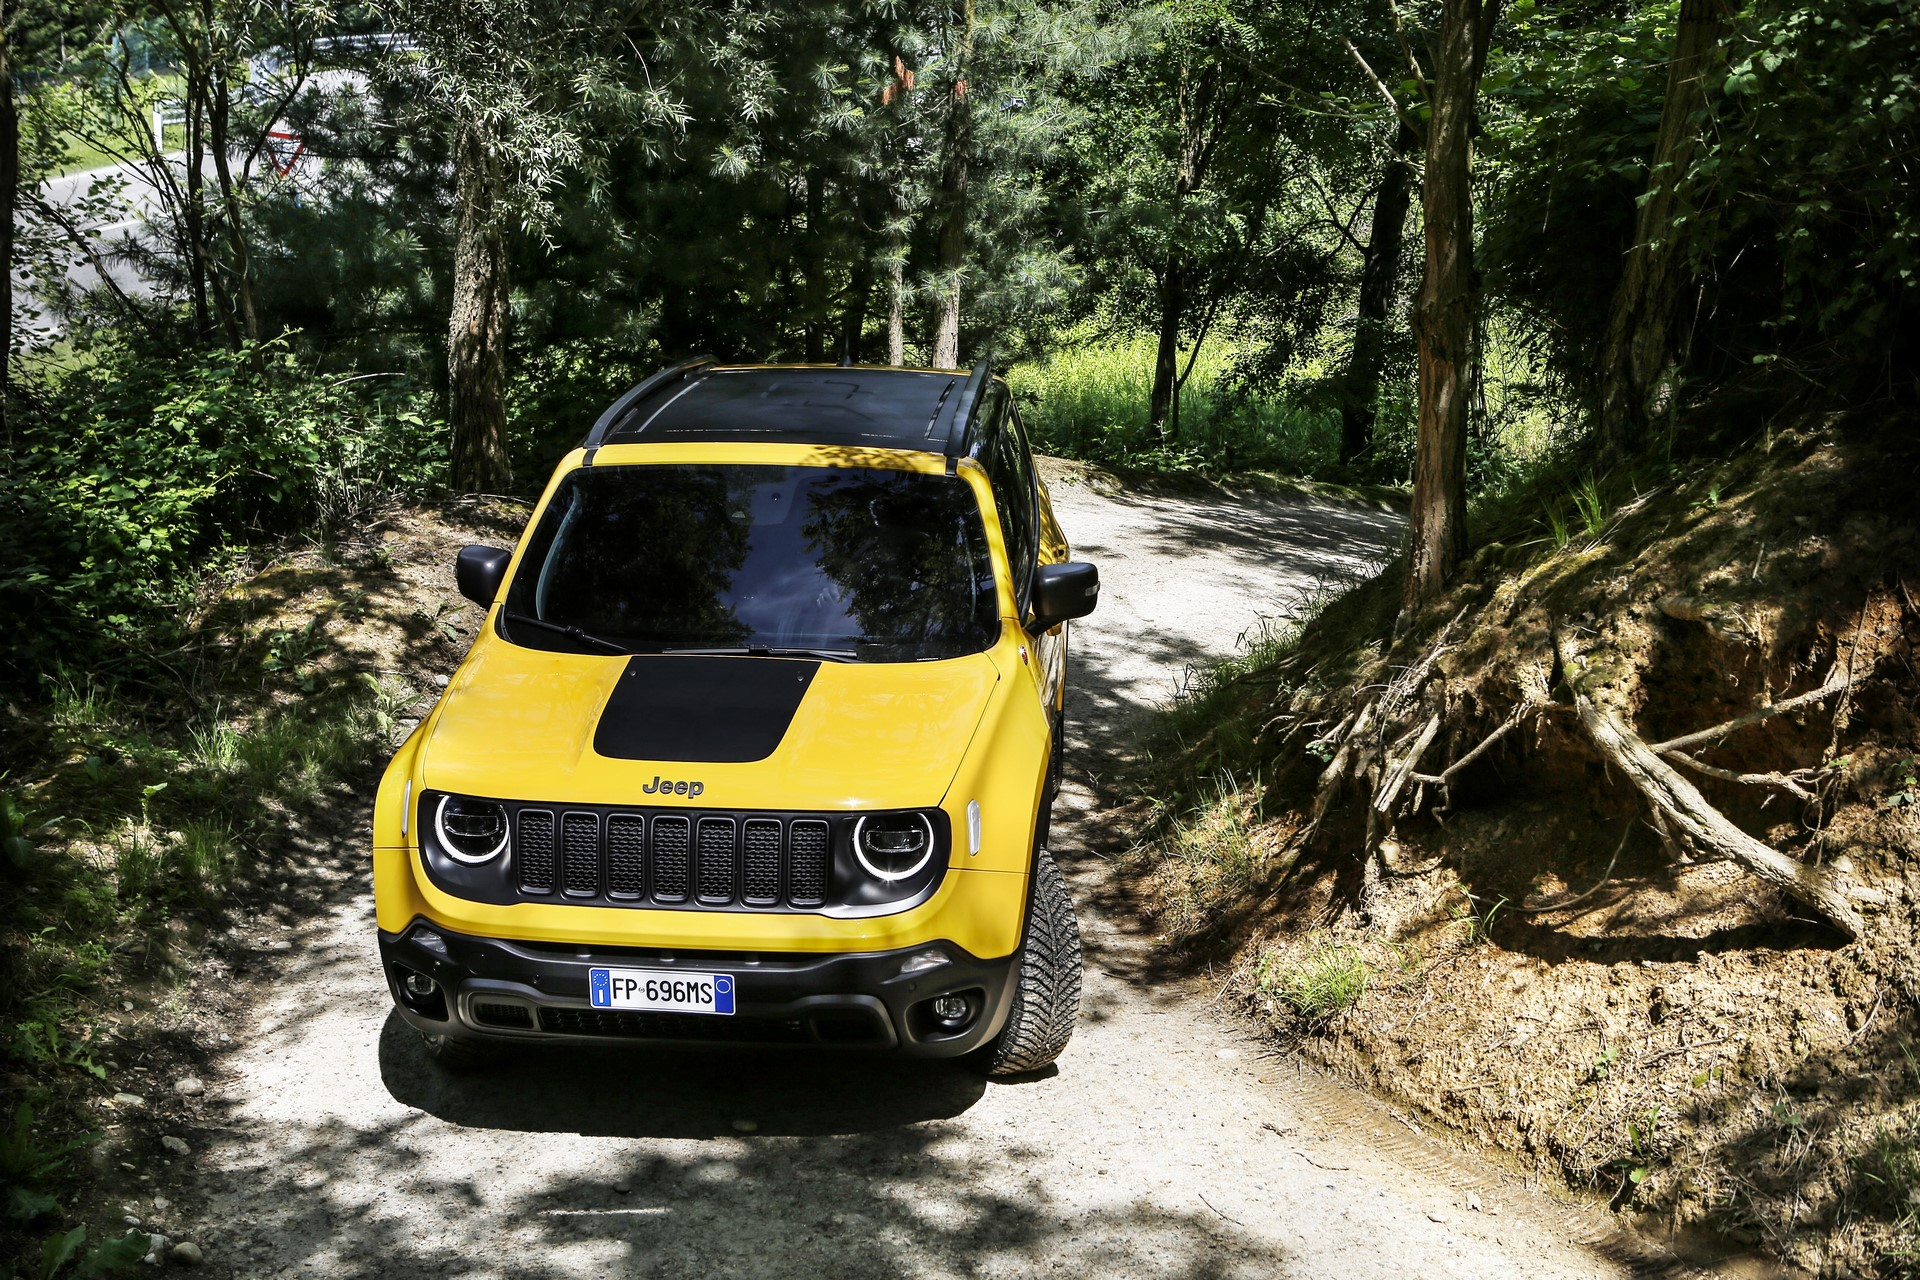 Jeep Renegade facelift 2019 (42)